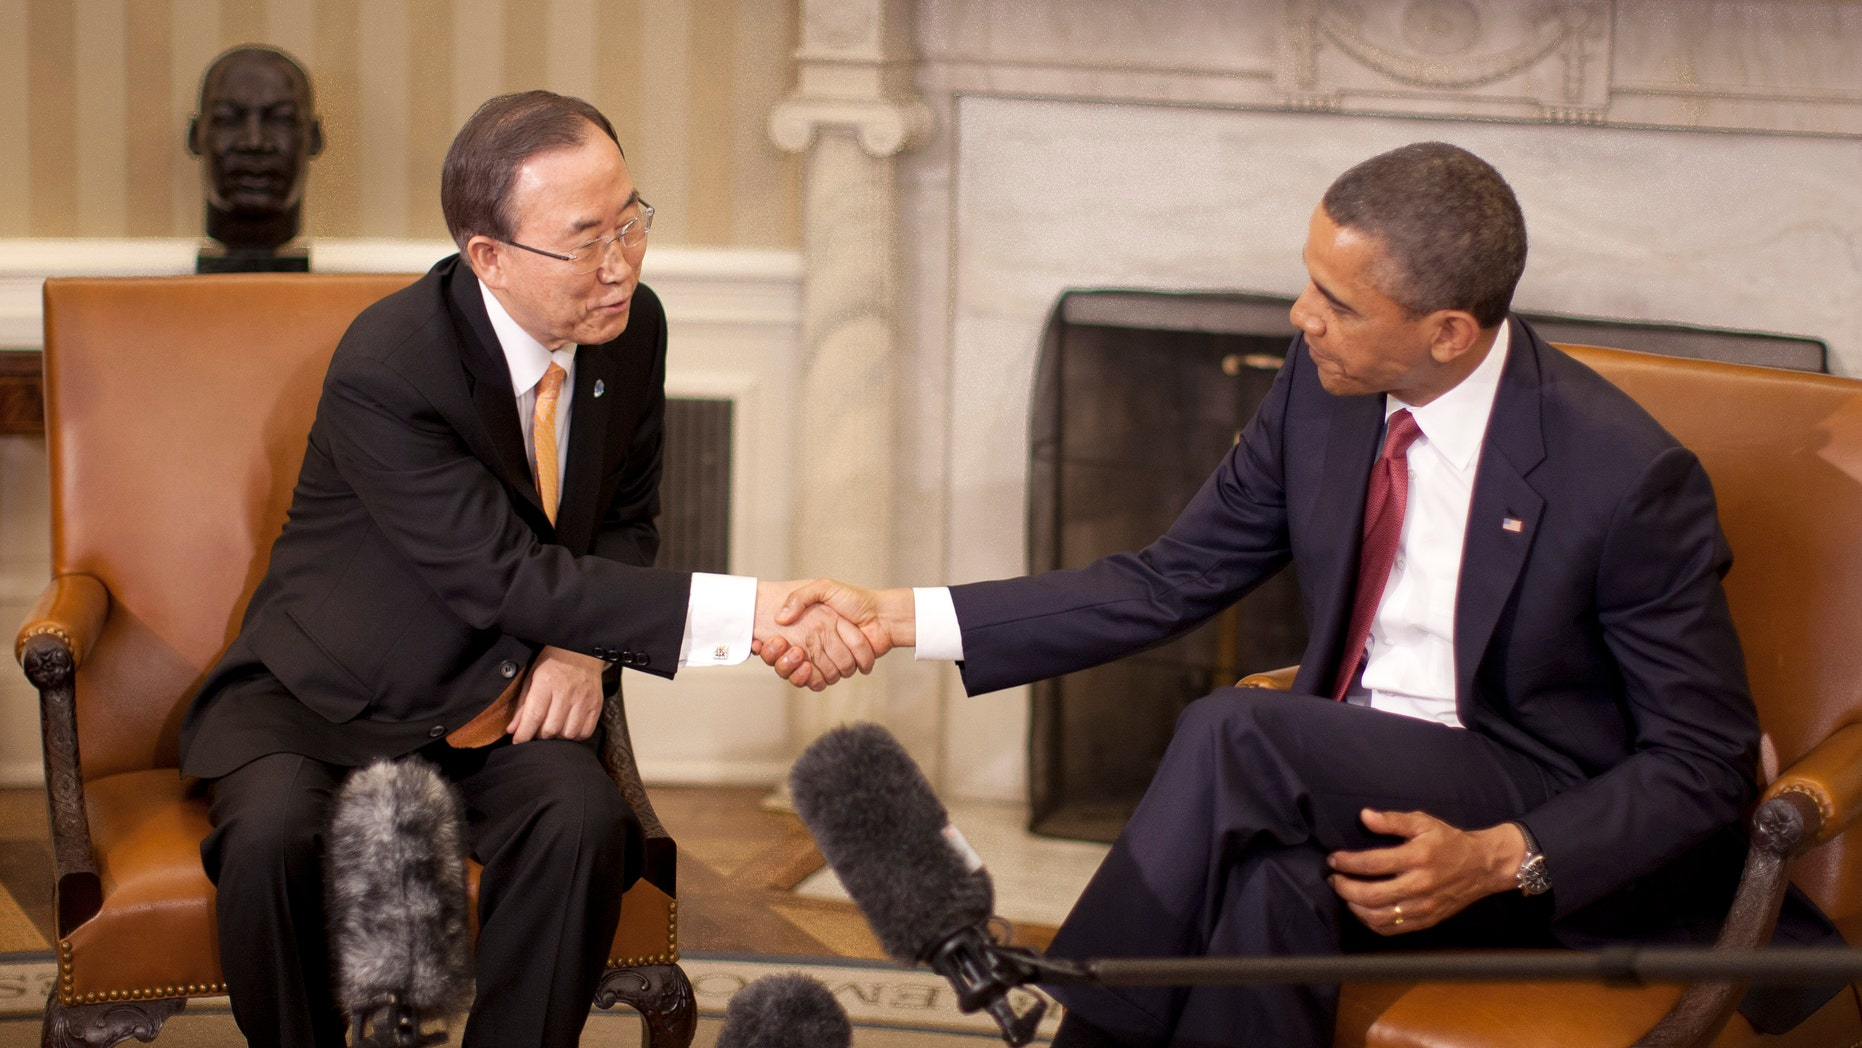 President Barack Obama shakes hands with with UN Secretary-General Ban Ki-moon during their meeting in the Oval Office of the White House in Washington, Thursday, April 11, 2013. (AP Photo/Pablo Martinez Monsivais)